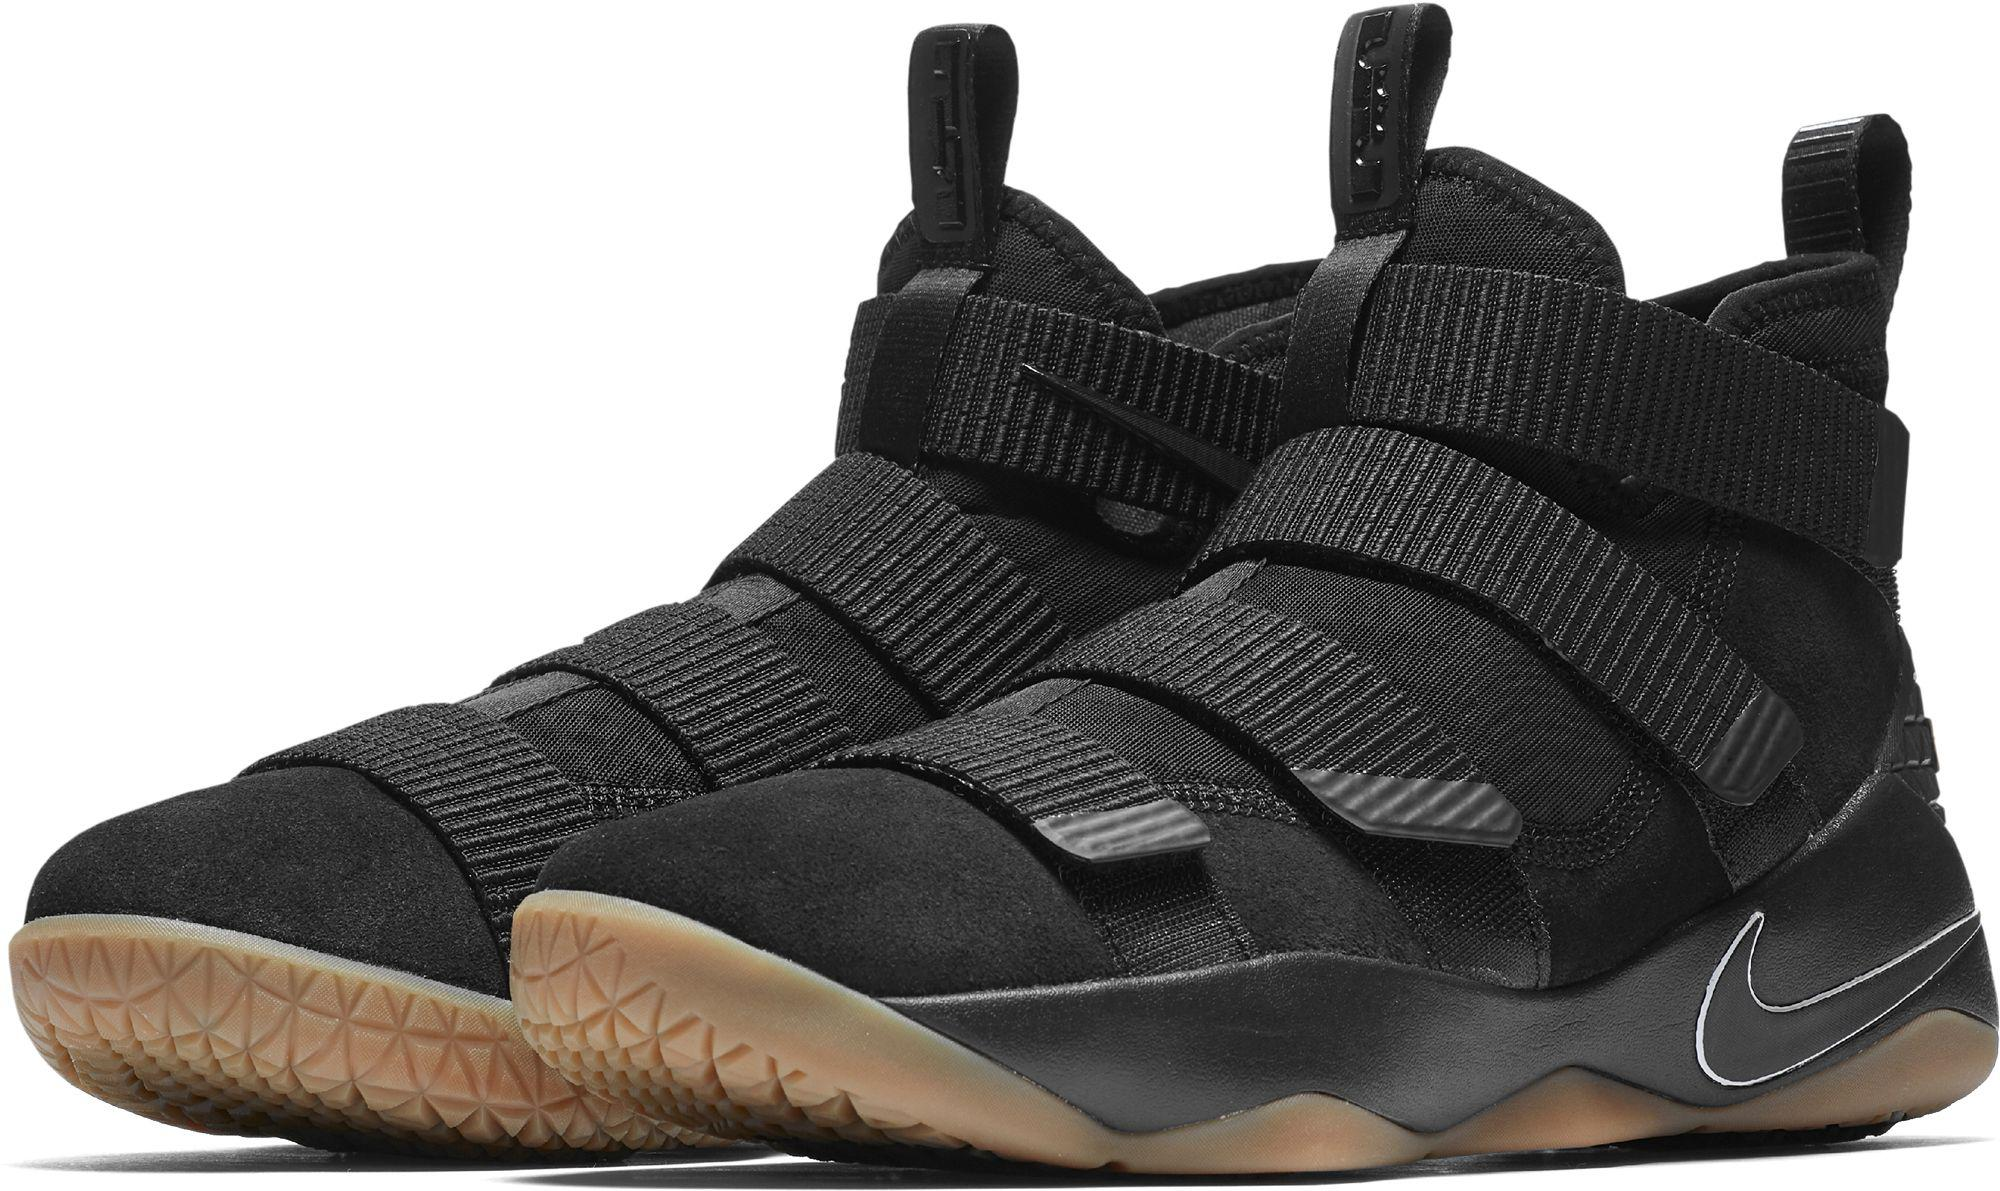 d3b20c0d4cf2 Nike Zoom Lebron Soldier Xi Basketball Shoes in Black for Men - Lyst